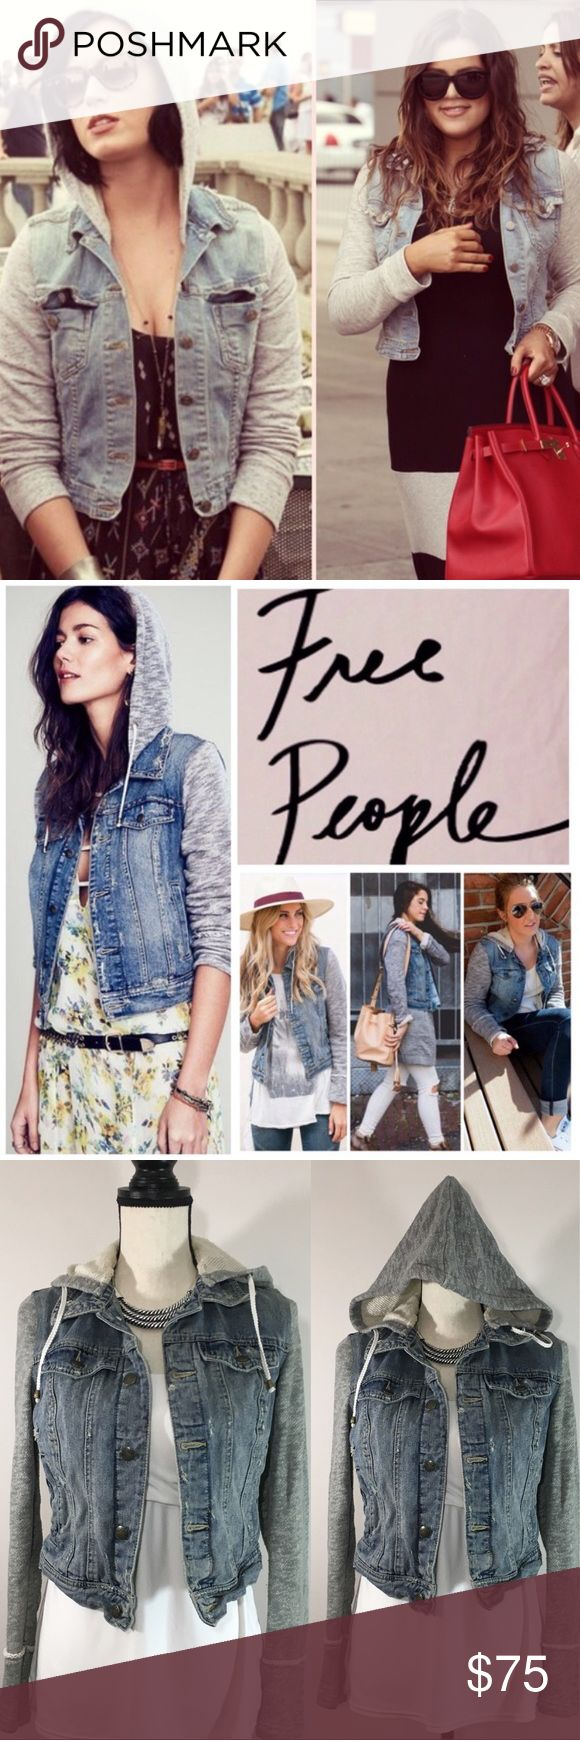 """Free People Knit Hooded Distressed Denim Jacket Free People 'Knit Hooded Denim Jacket' in Indie Wash  100% cotton, machine washable, 17.5"""" armpit to armpit (35"""" all around), 18"""" arm inseam, 20"""" length, removable hoodie, front breast pockets with button flap button closure, front welt pockets, contrast fabric sleeves and hood, drawstring hood, adjustable button tab at hem, intentional distressing throughout, measurements are approx.  This is a great piece with a cool edge--a celeb fave!  Worn…"""